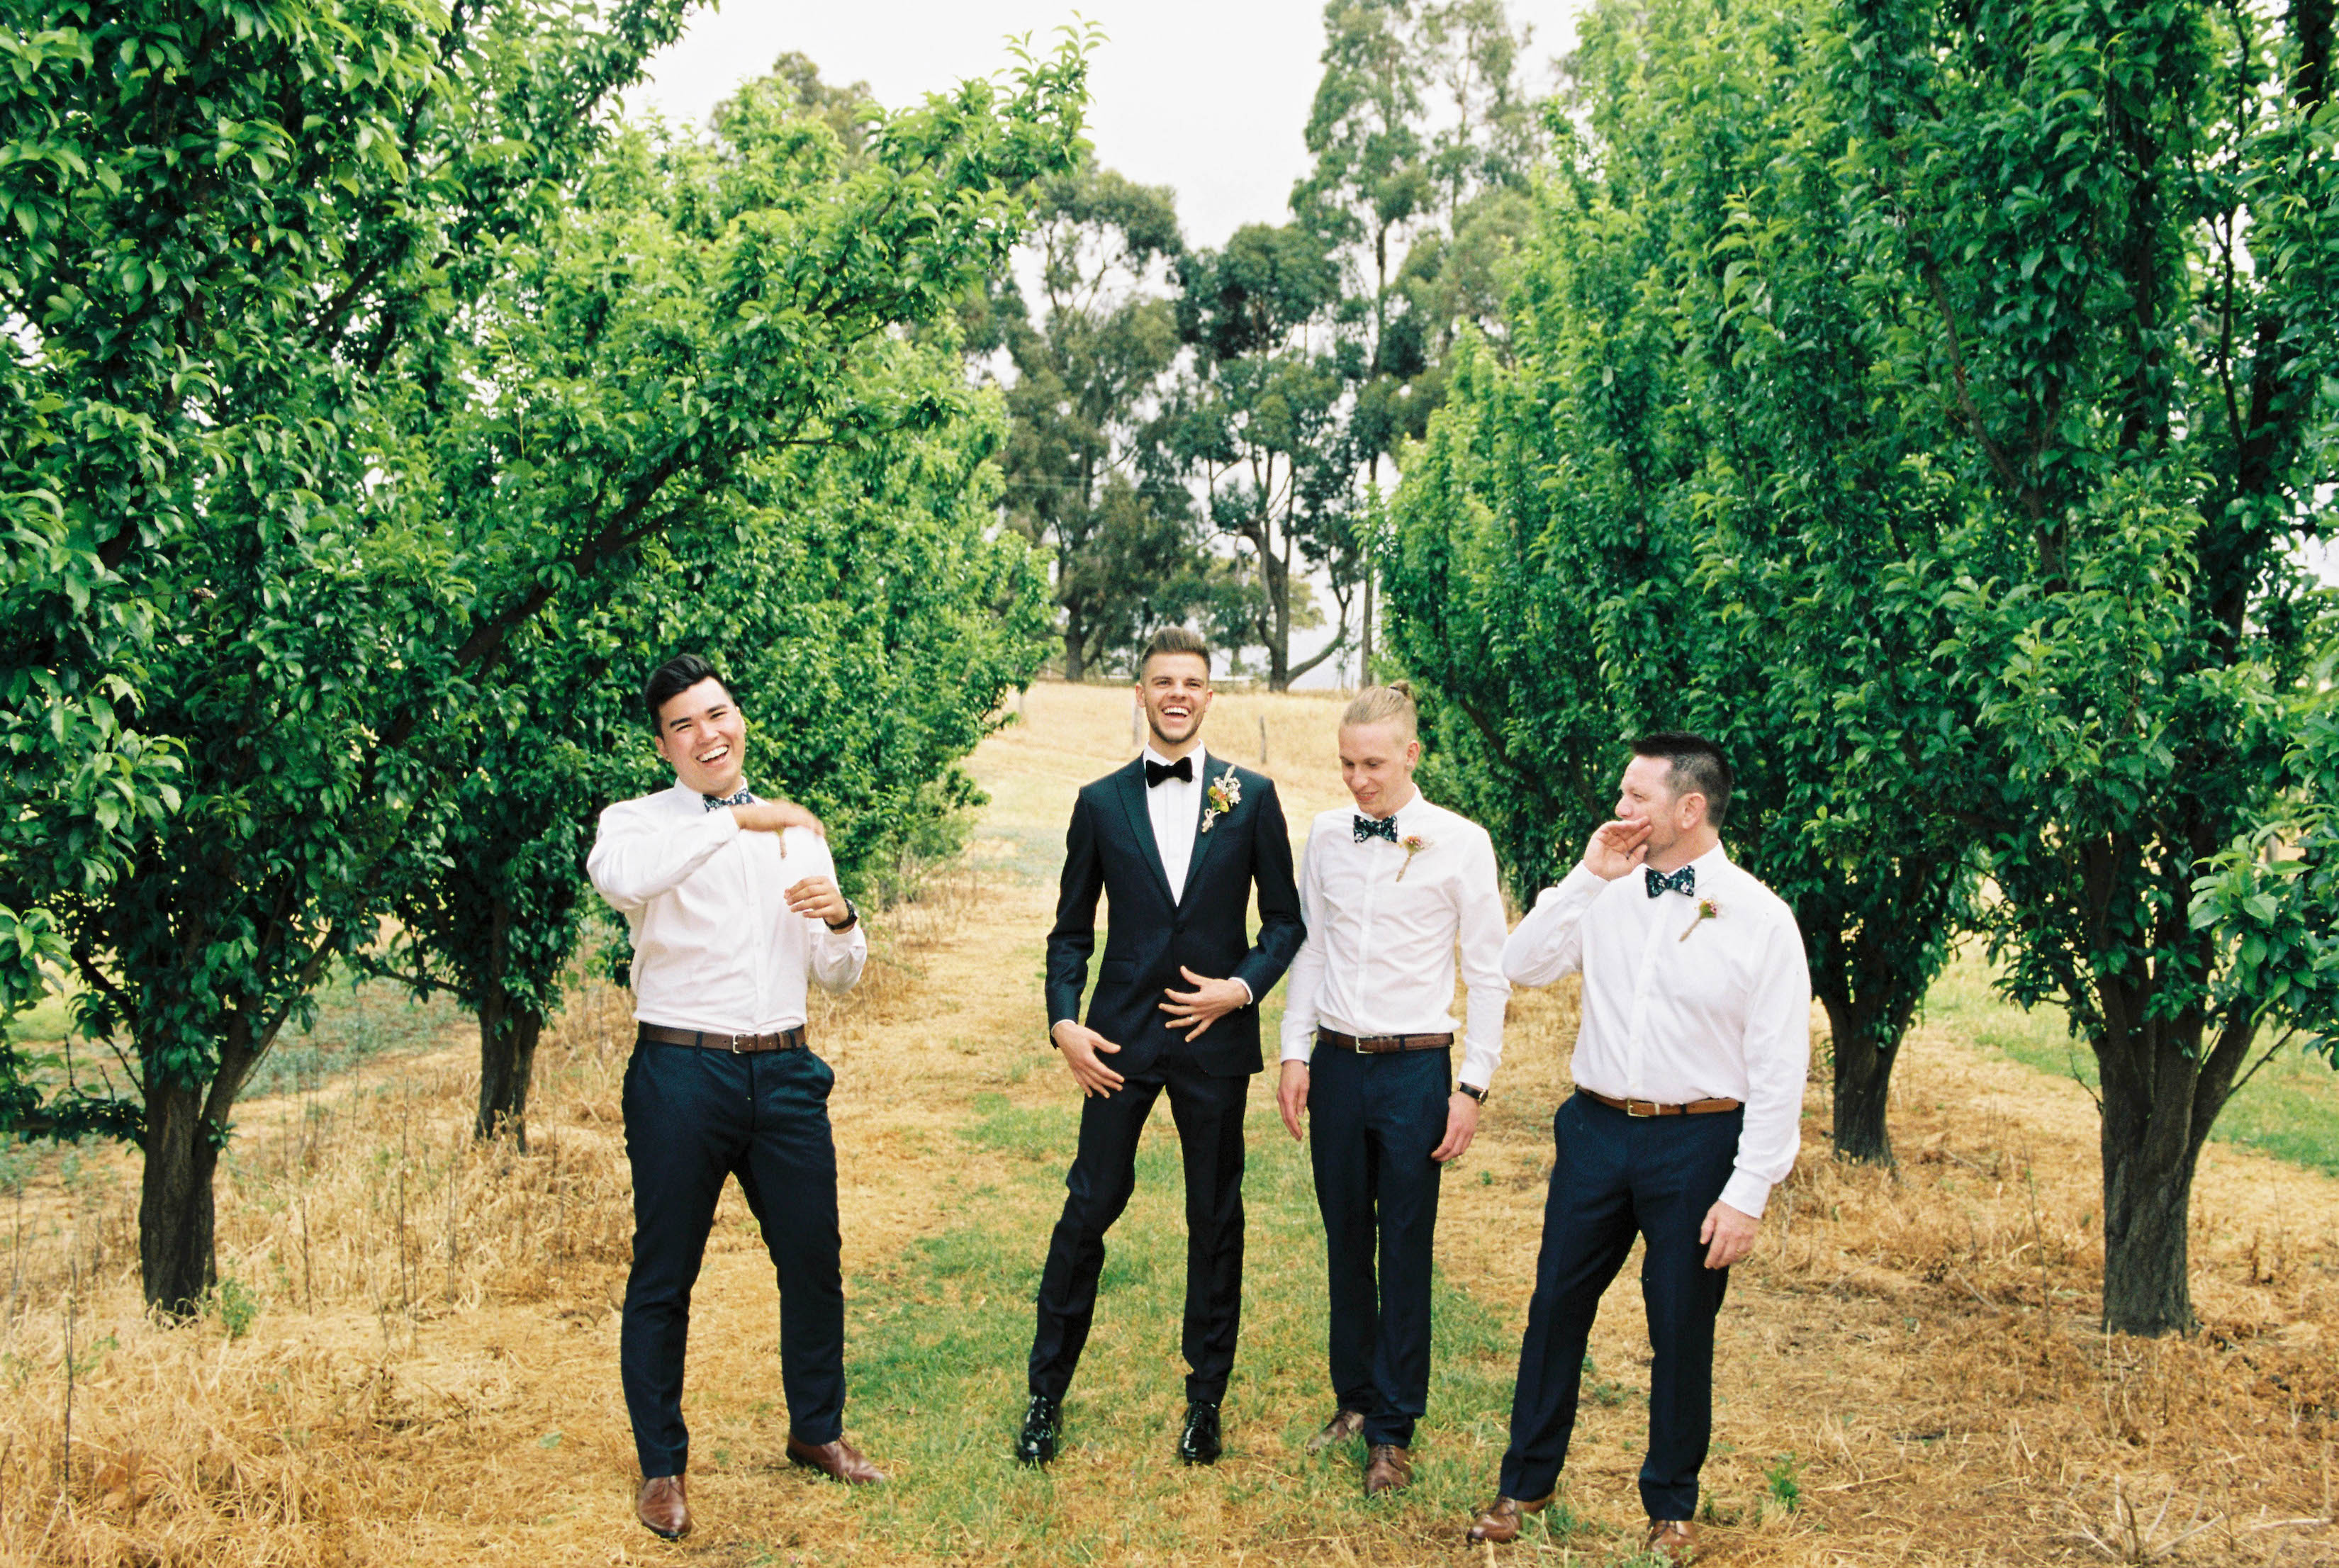 Authentic South West Wedding Photography of the groom and his groomsmen laughing together